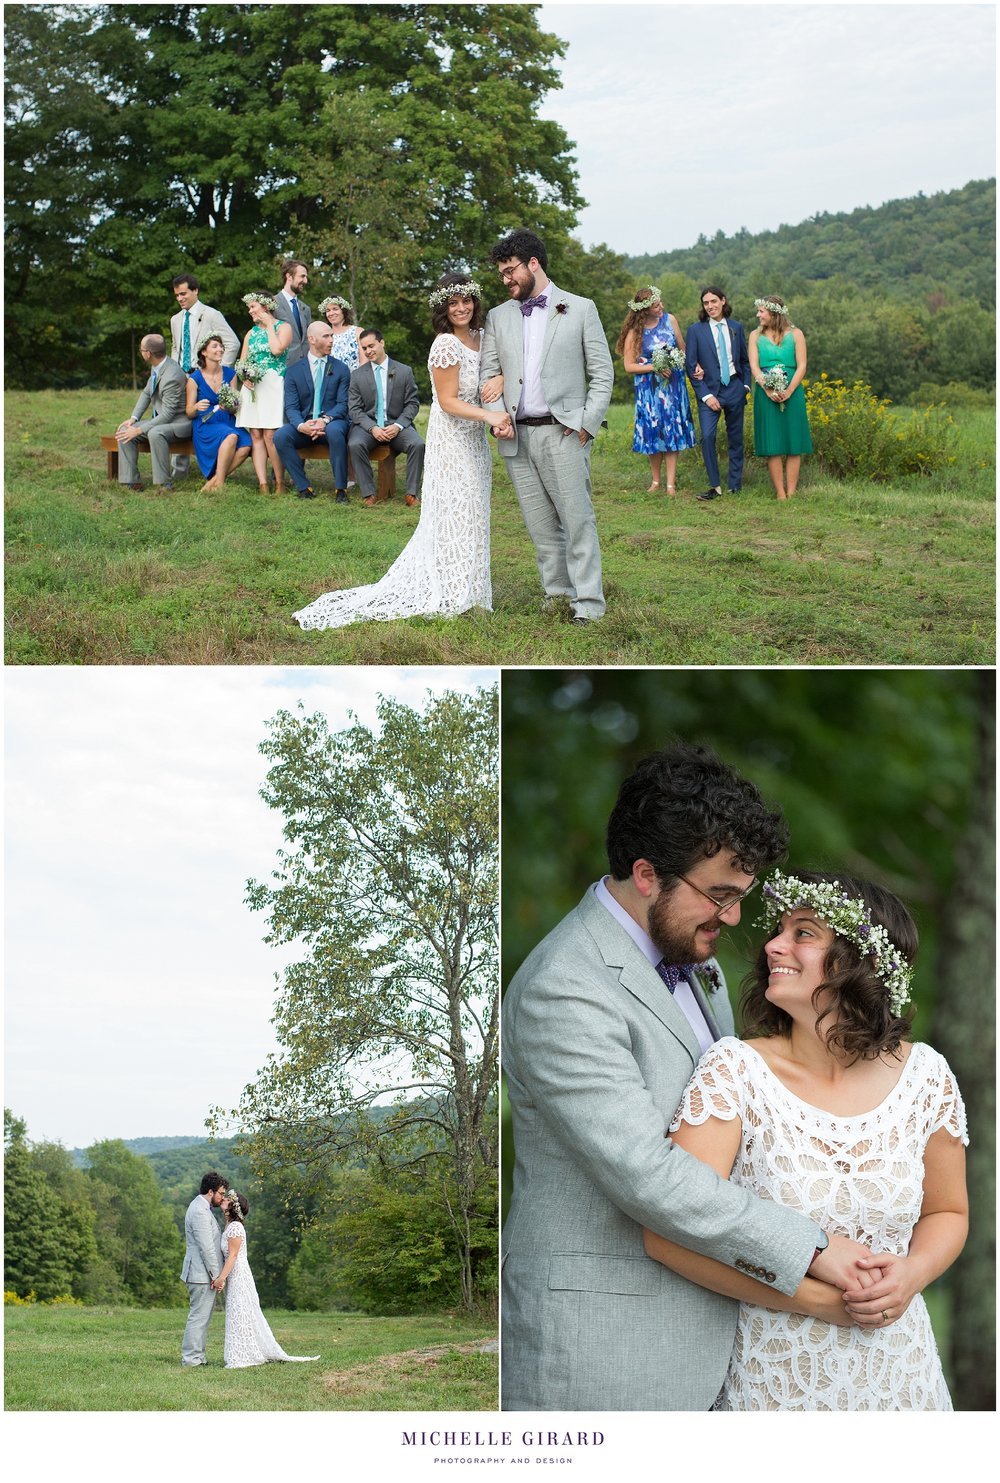 RusticWedding_MaplewoodFamilyFarm_MountainTopCeremony_MichelleGirardPhotography19.jpg